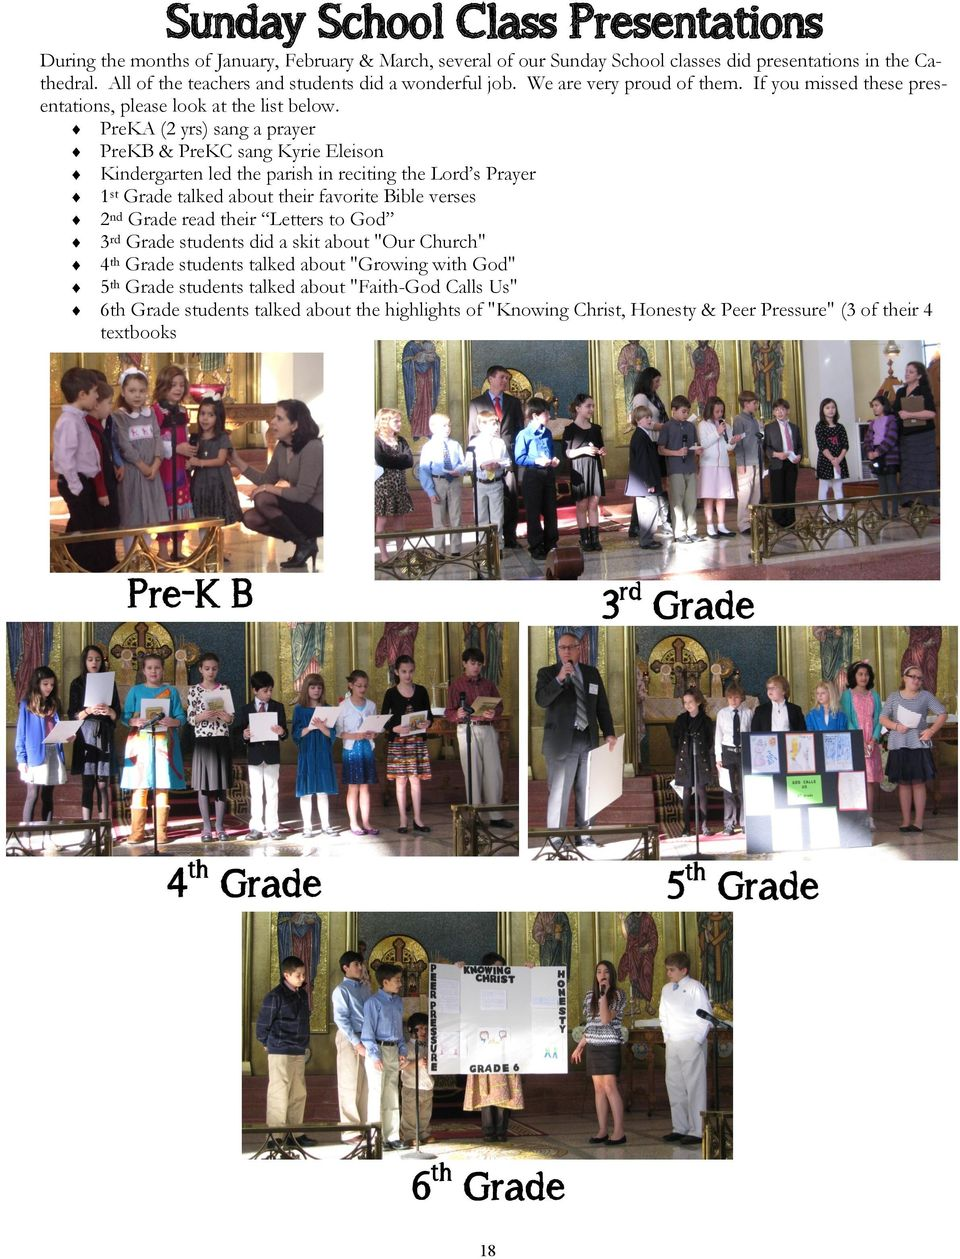 PreKA (2 yrs) sang a prayer PreKB & PreKC sang Kyrie Eleison Kindergarten led the parish in reciting the Lord s Prayer 1 st Grade talked about their favorite Bible verses 2 nd Grade read their